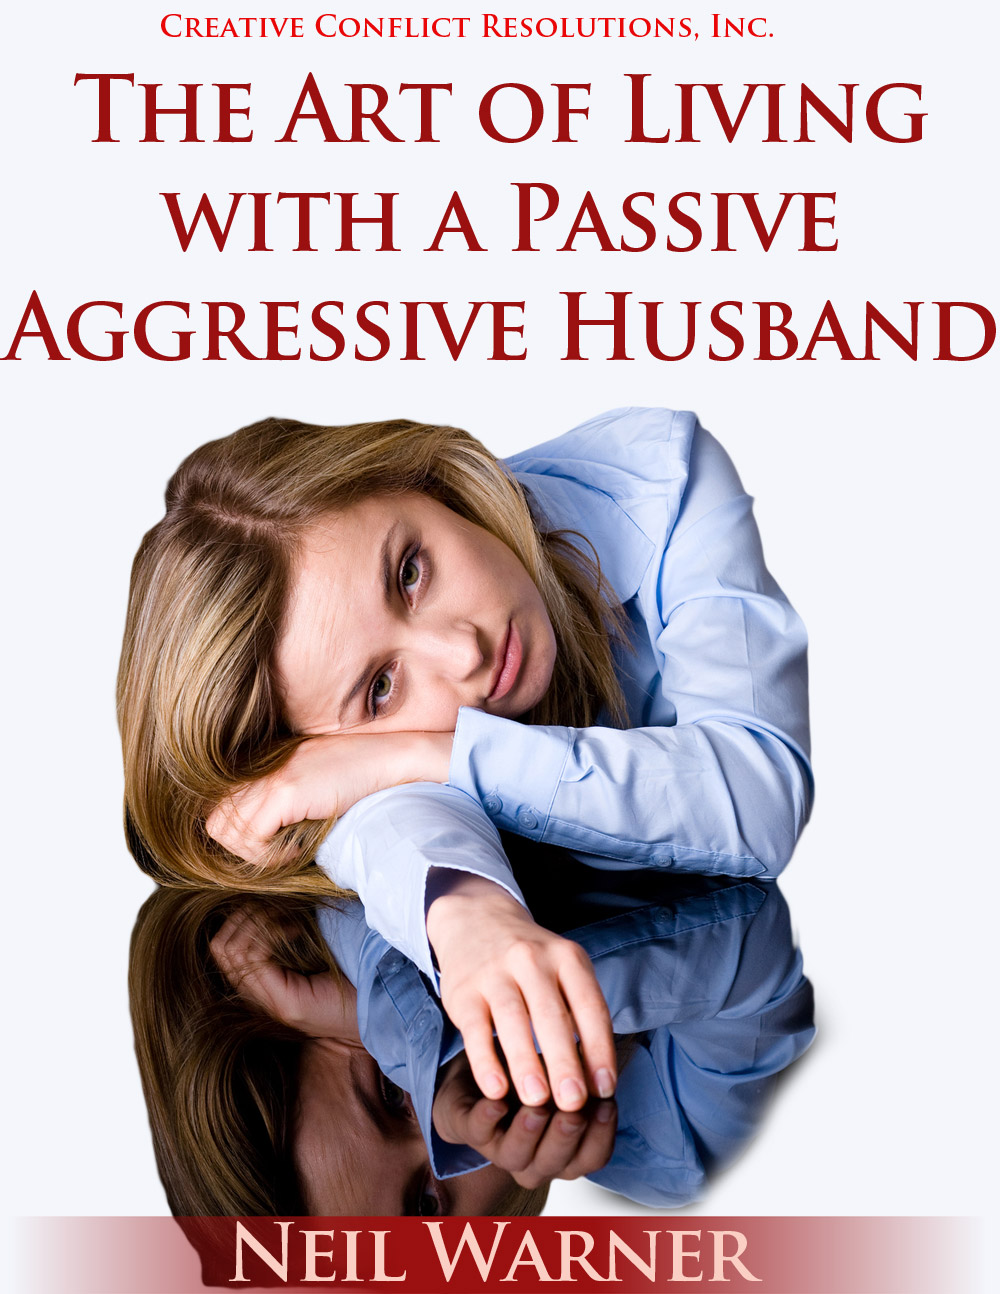 The Art of Living with a Passive Aggressive Husband